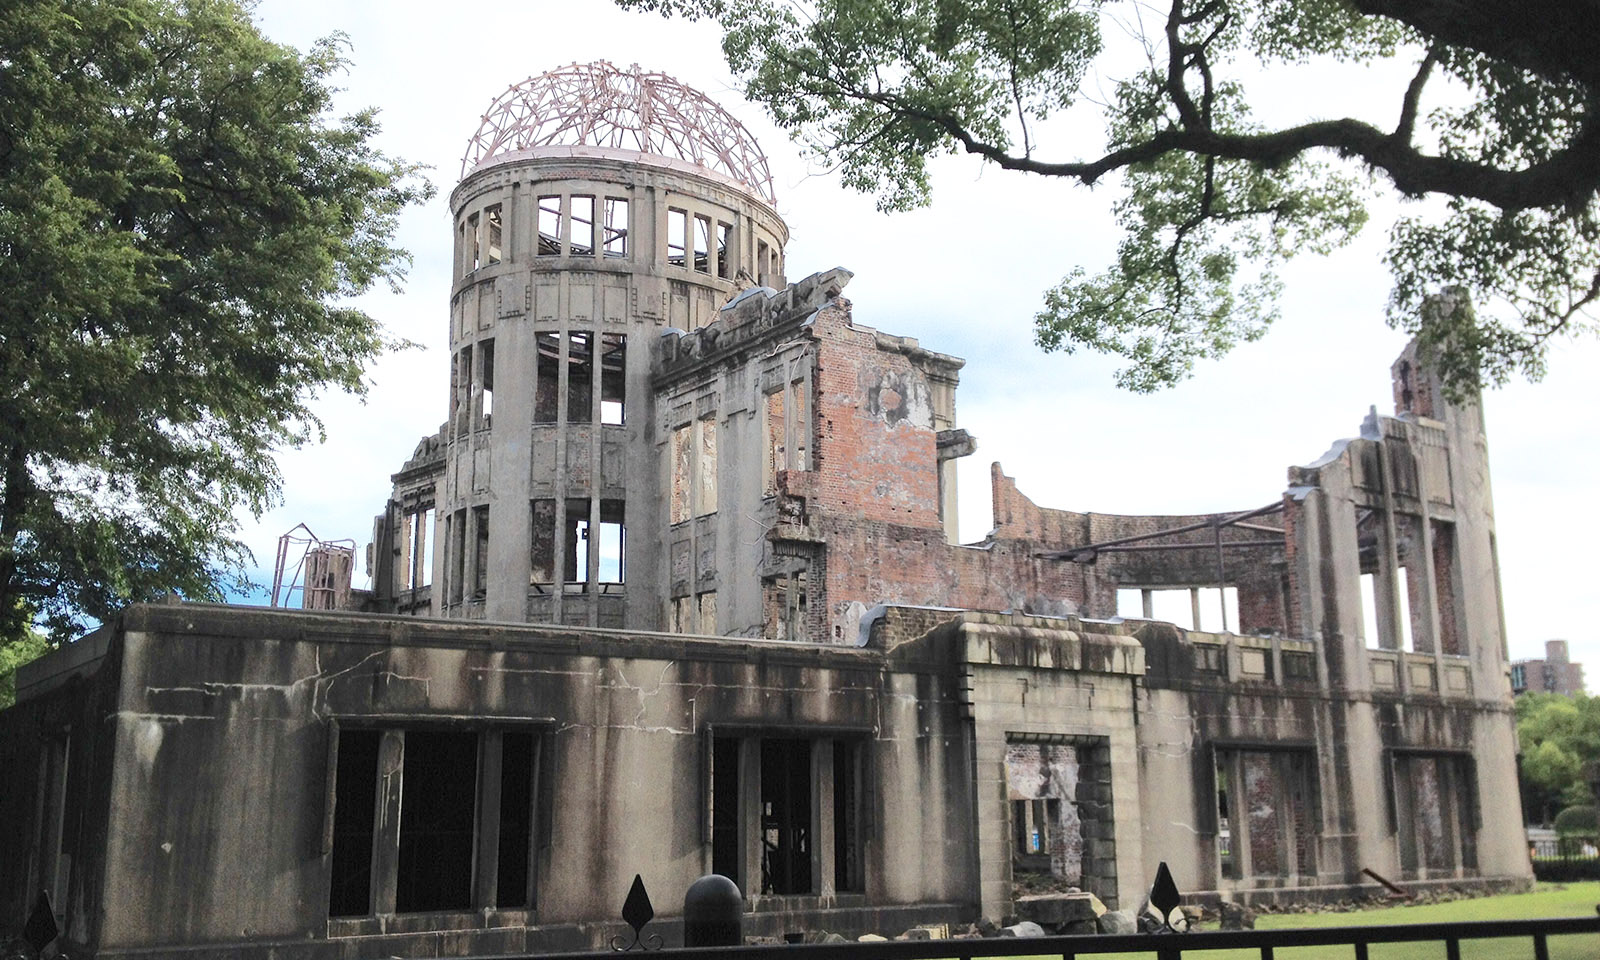 Friday is the 76th anniversary of Hiroshima. Doomsday is closer than ever